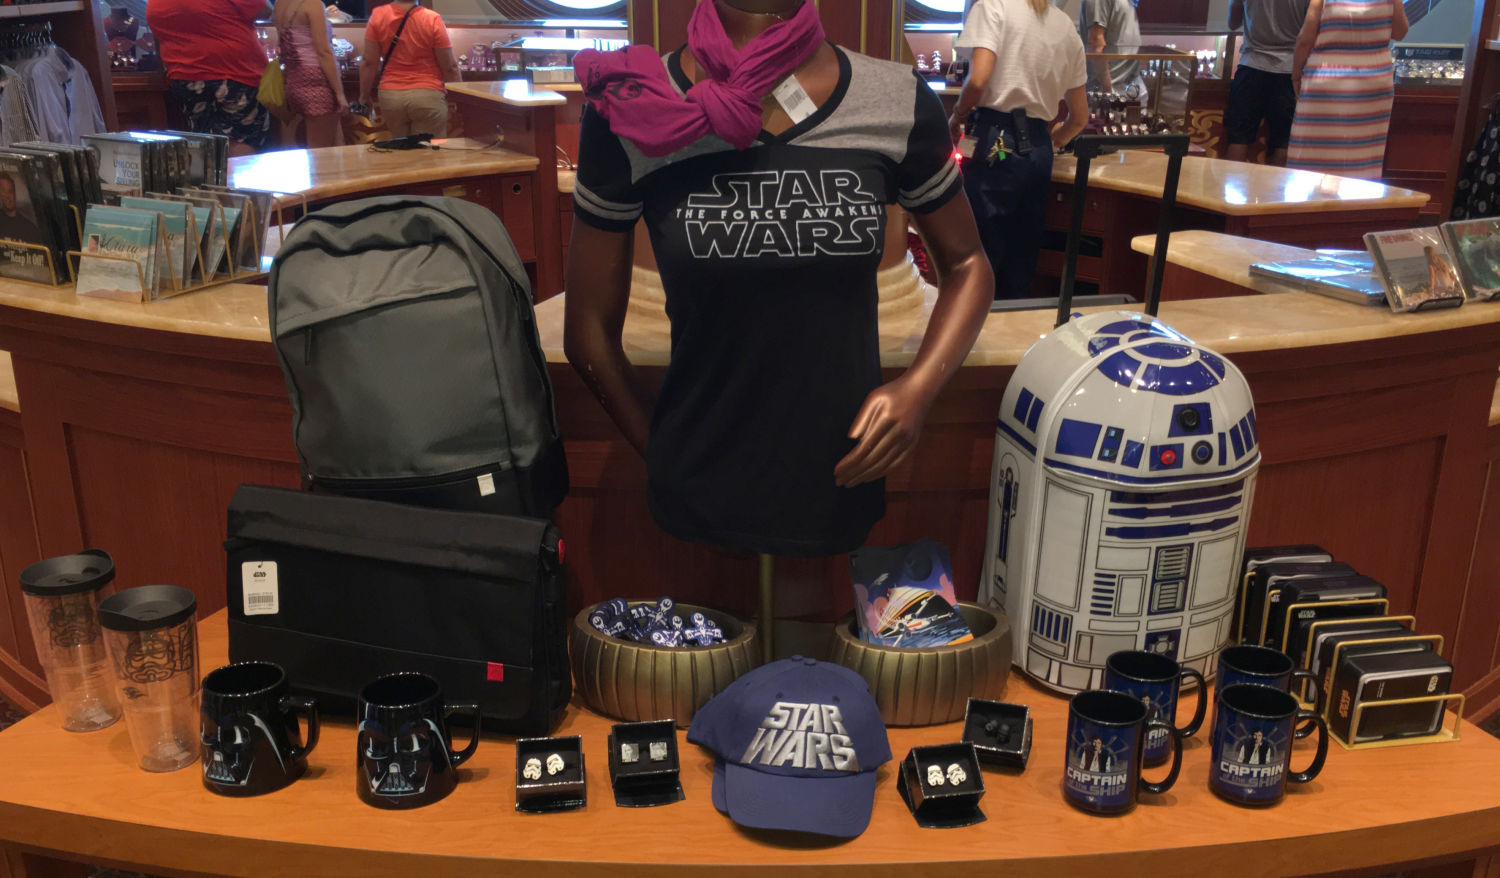 Disney Cruise Line Halloween Merchandise.Disney Cruise Line Star Wars Merchandise Photos